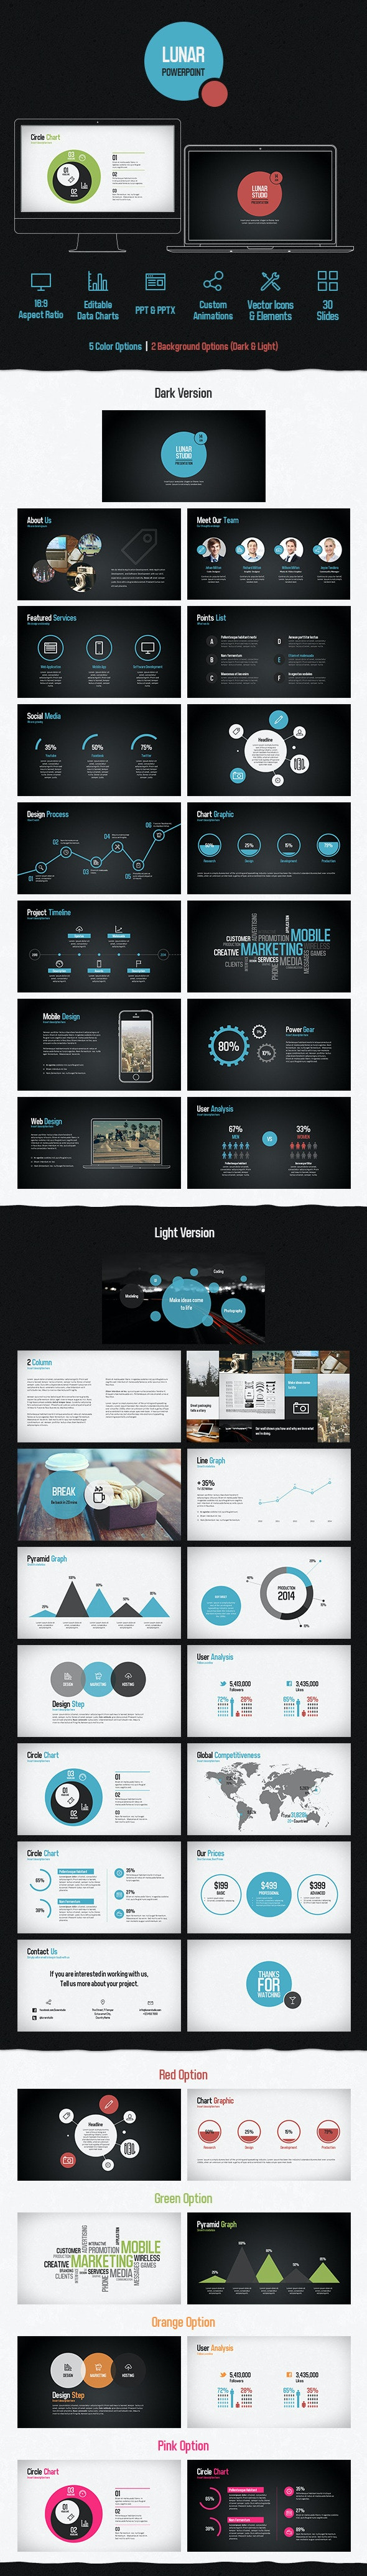 Lunar Powerpoint Presentation Template - Creative PowerPoint Templates